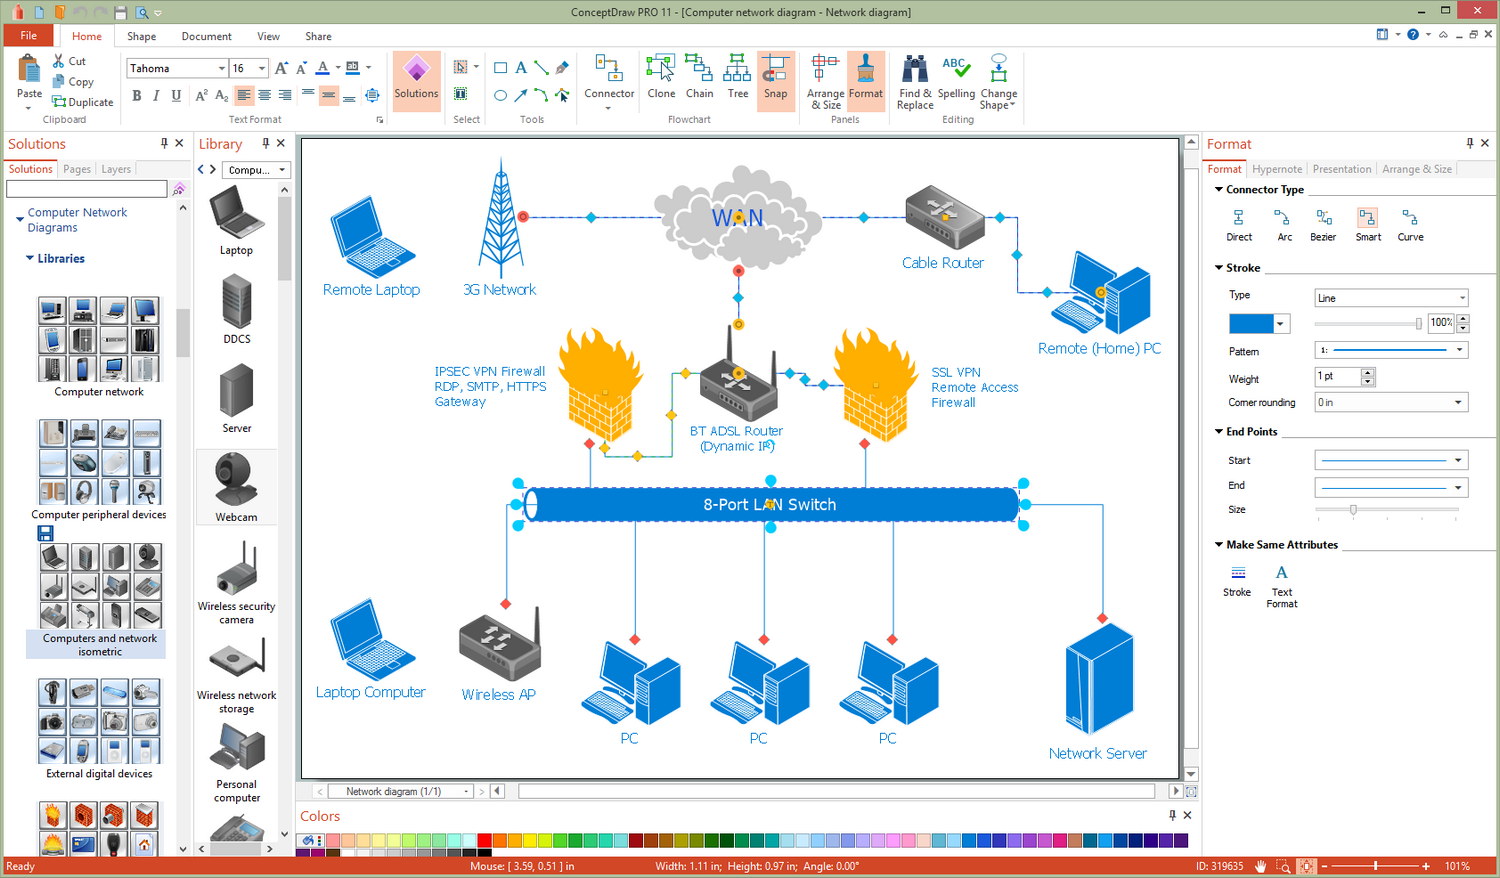 The Best 22 Way To Draw Network Diagram In Word Samples Http Bookingritzcarlton Info The Best 22 Way To Dra Relationship Diagram Computer Network Networking